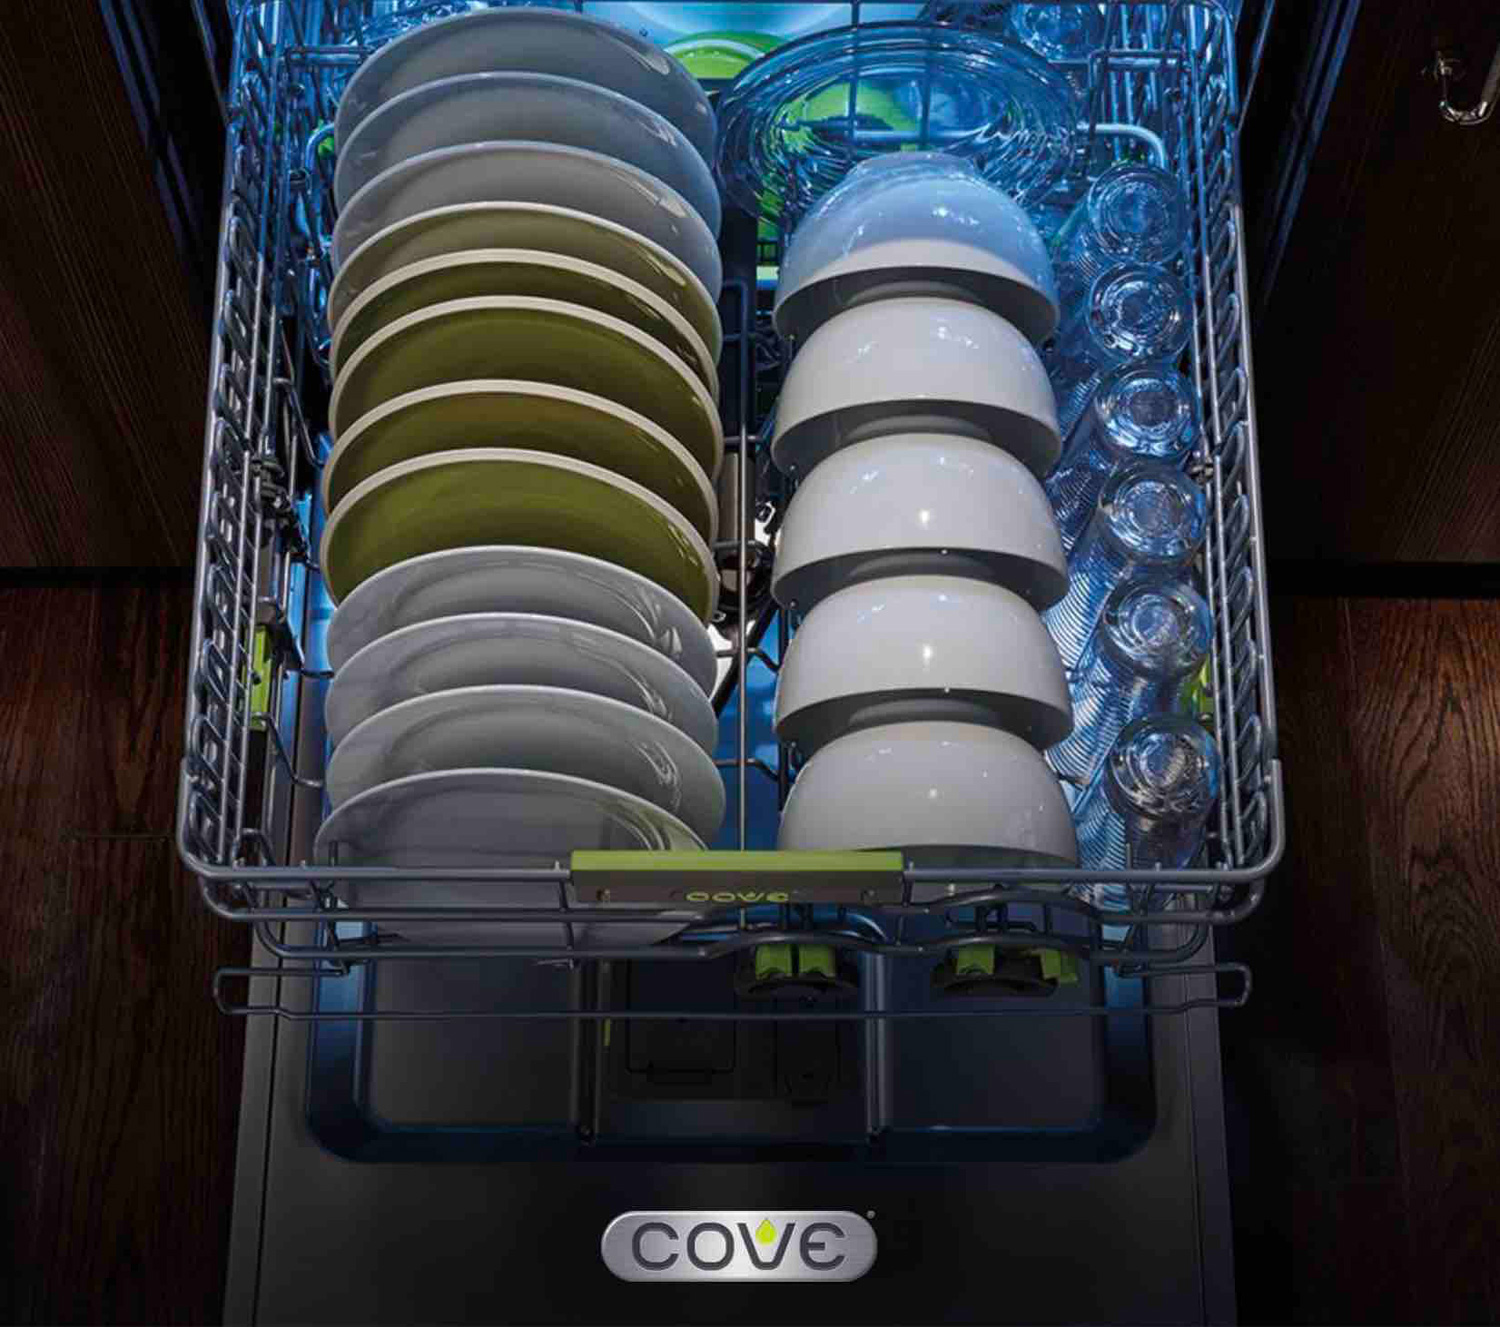 Cove_Diswasher_Upper-rack_full